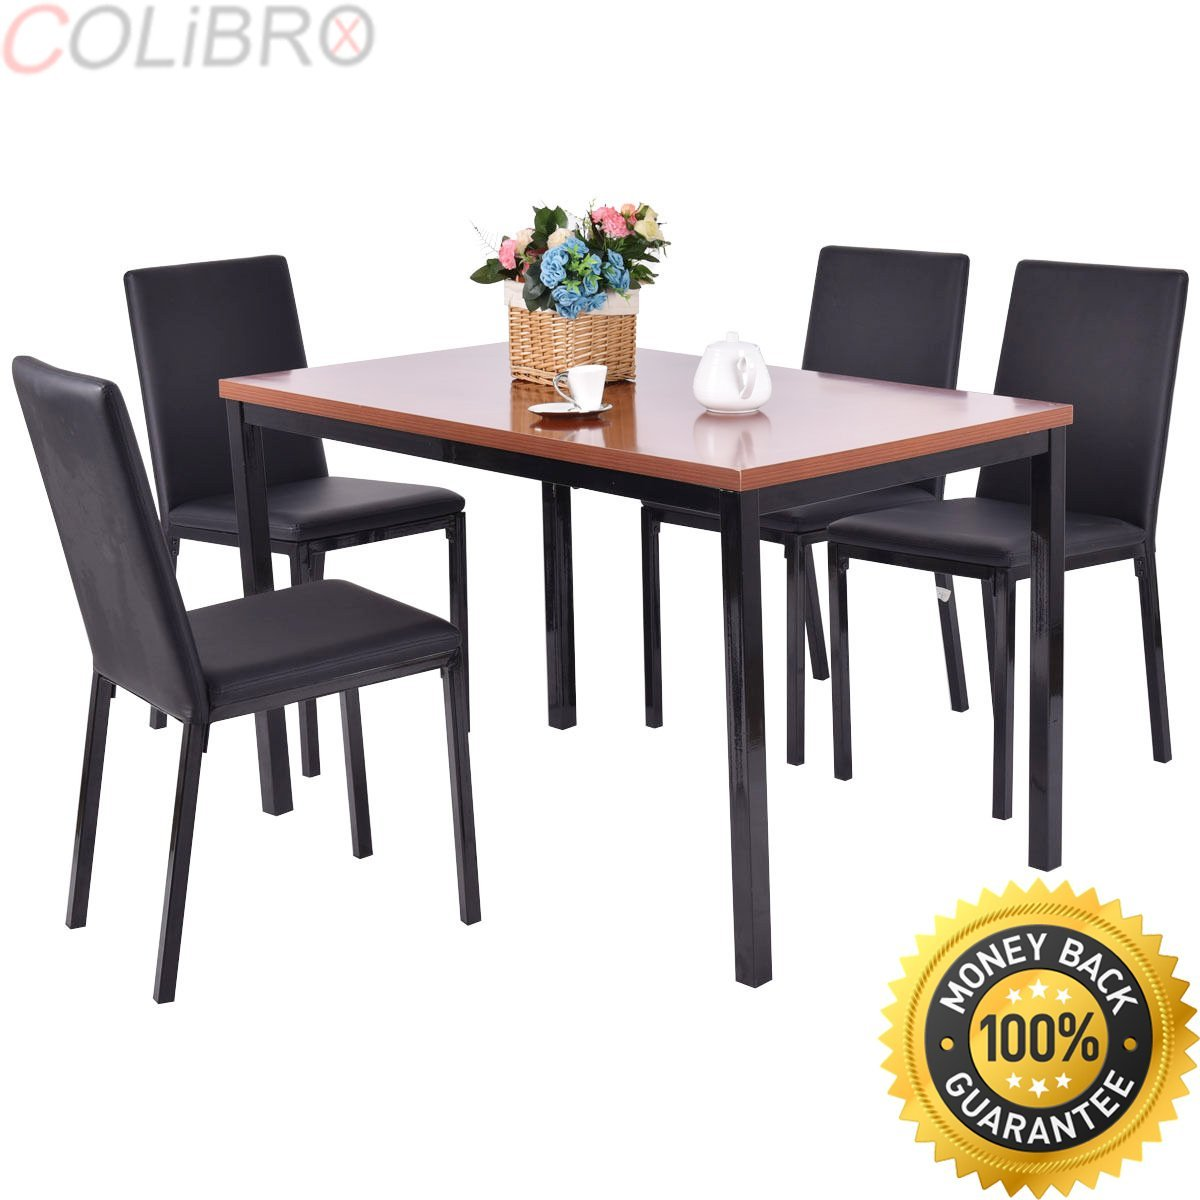 a5d511497b67 Get Quotations · COLIBROX--5 PCS Dining Table Set 4 PU Leather Chairs Home  Kitchen Breakfast Furniture